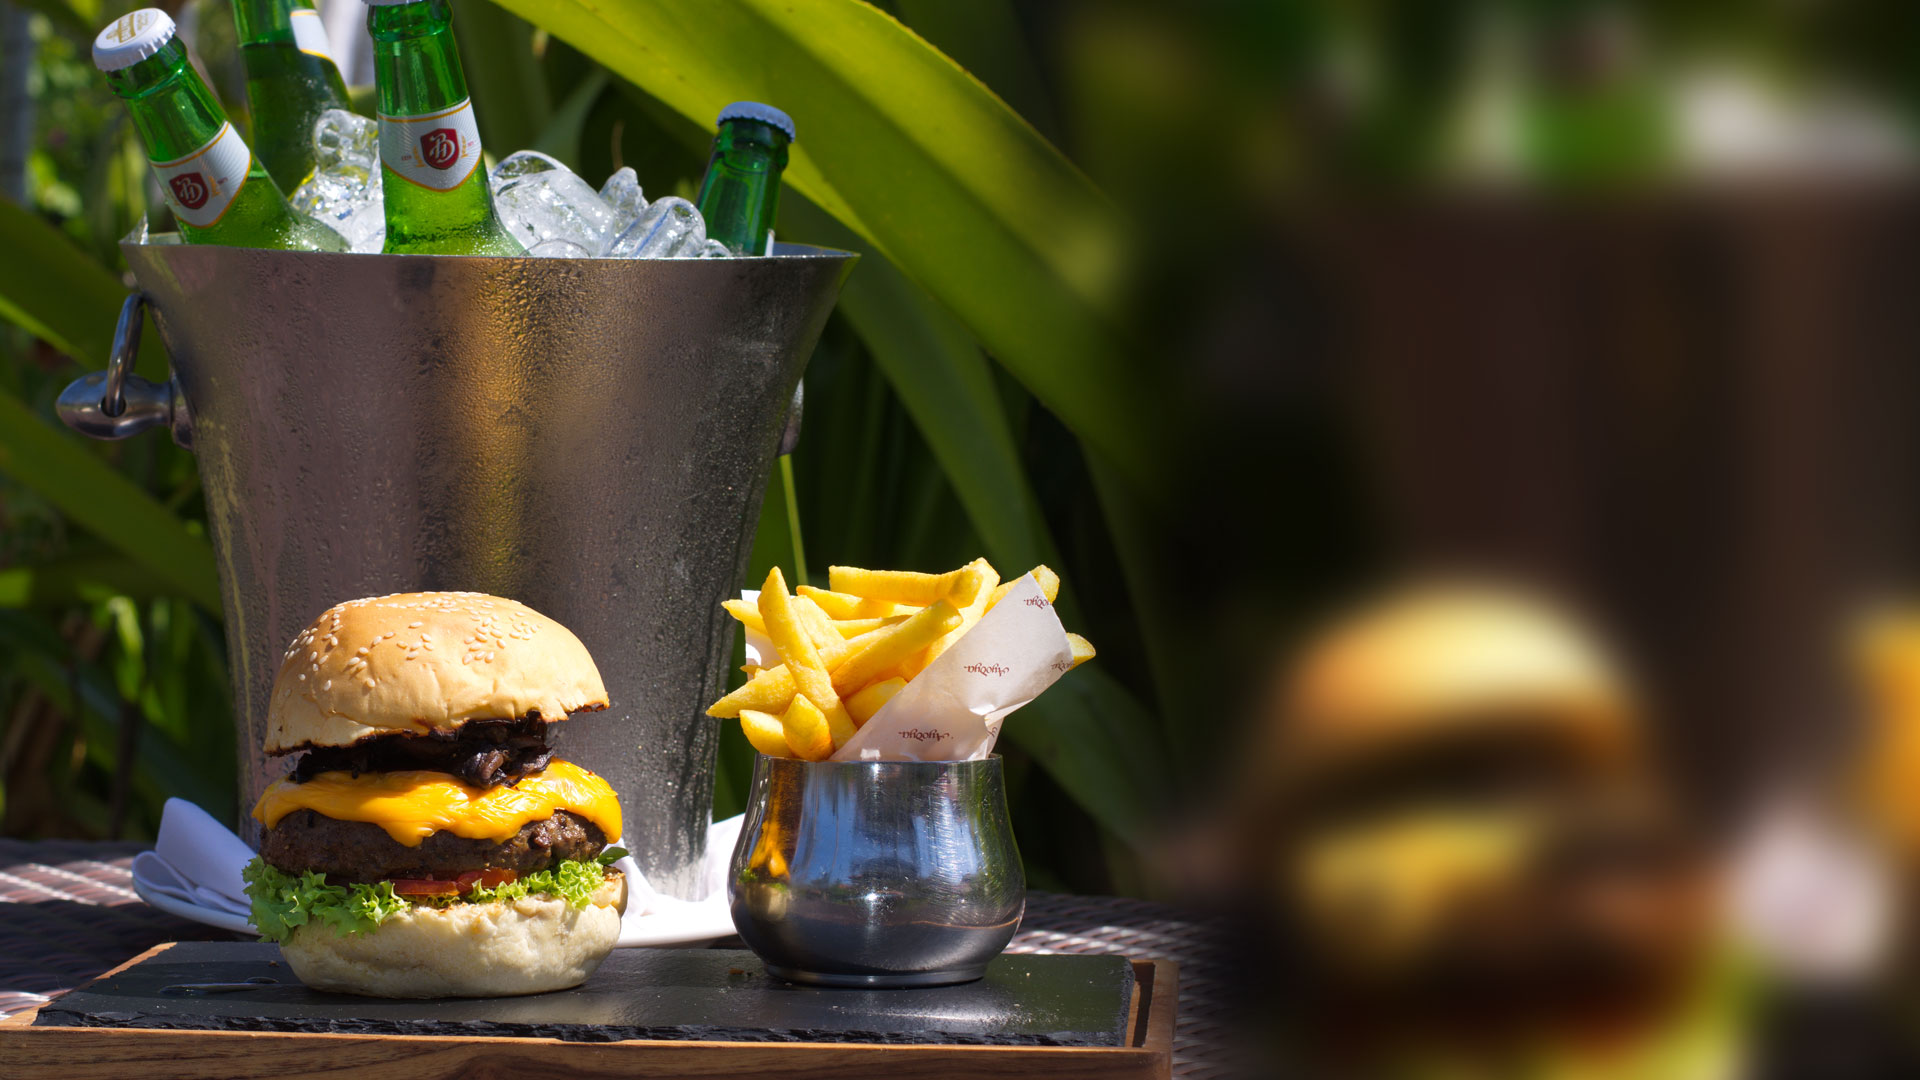 Beer Bucket & Burger